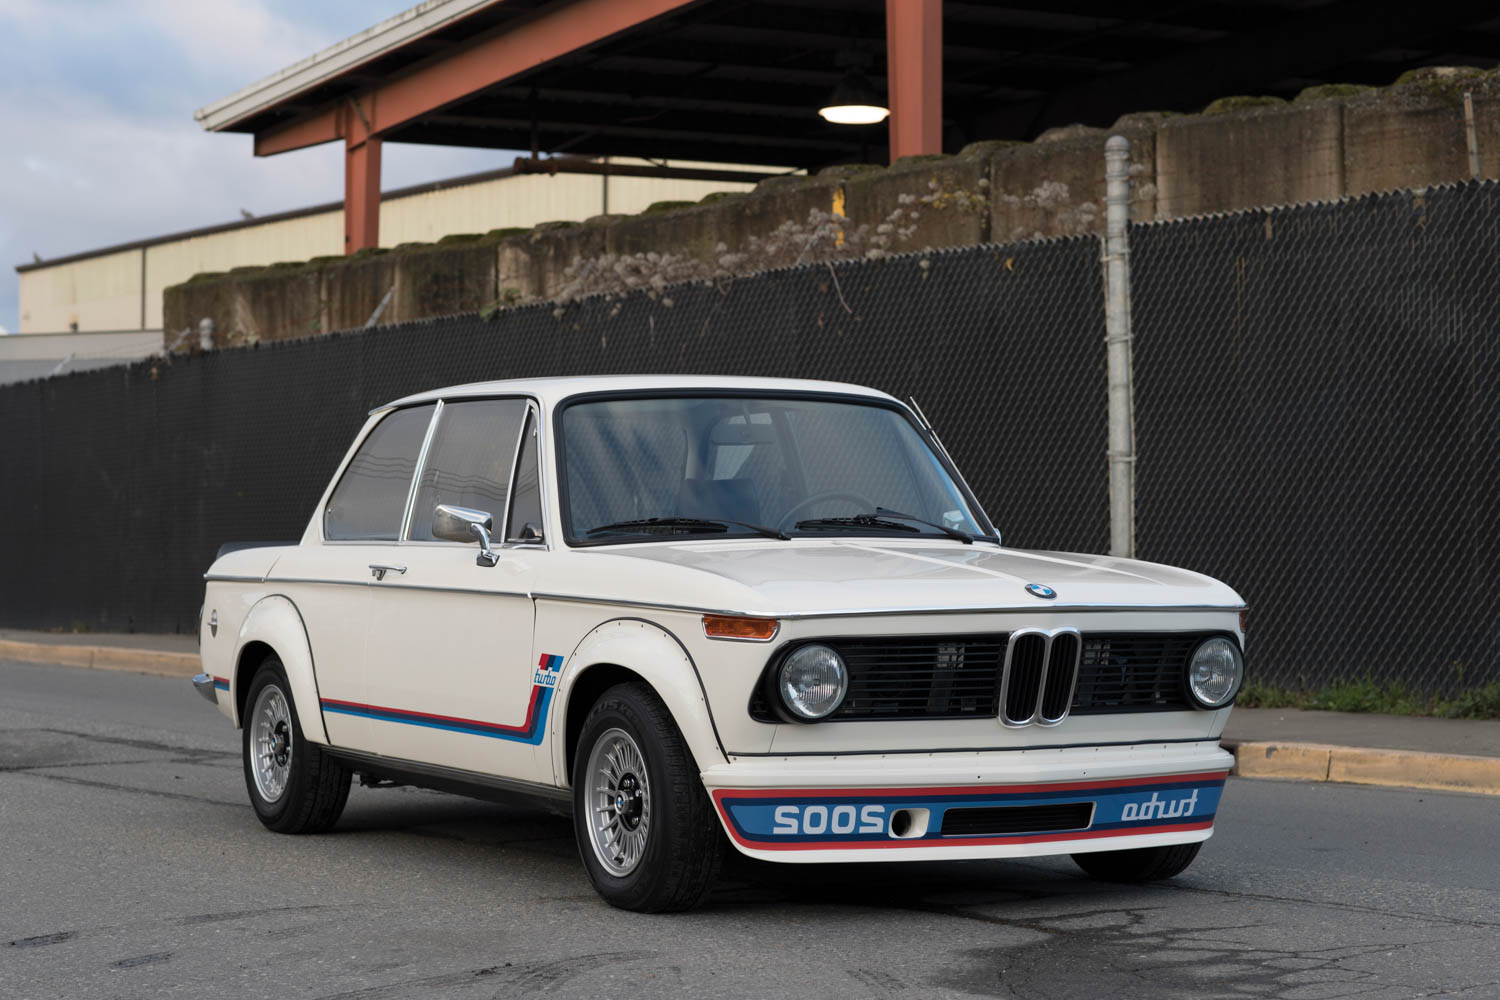 1974 BMW 2002 Turbo front 3/4